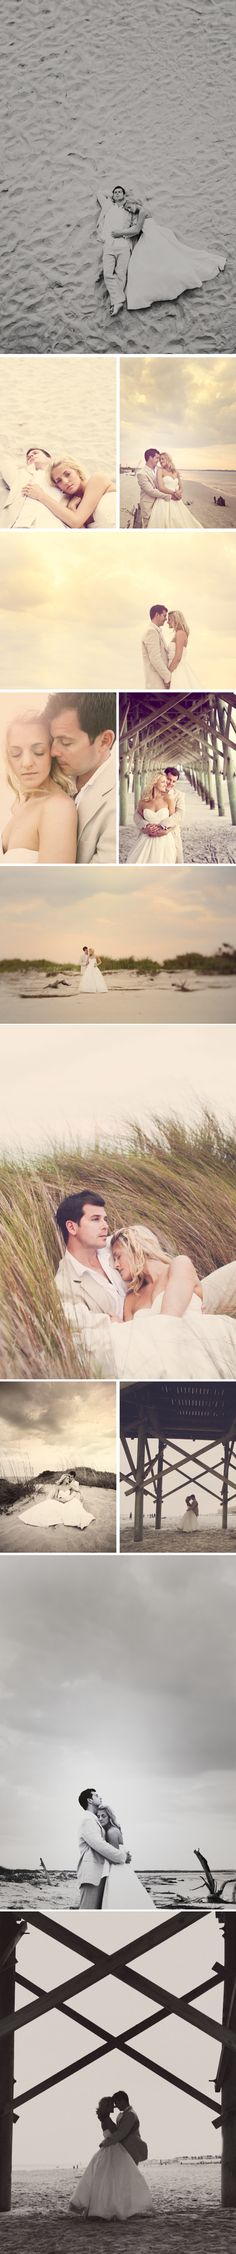 Beautiful beach bride & groom.